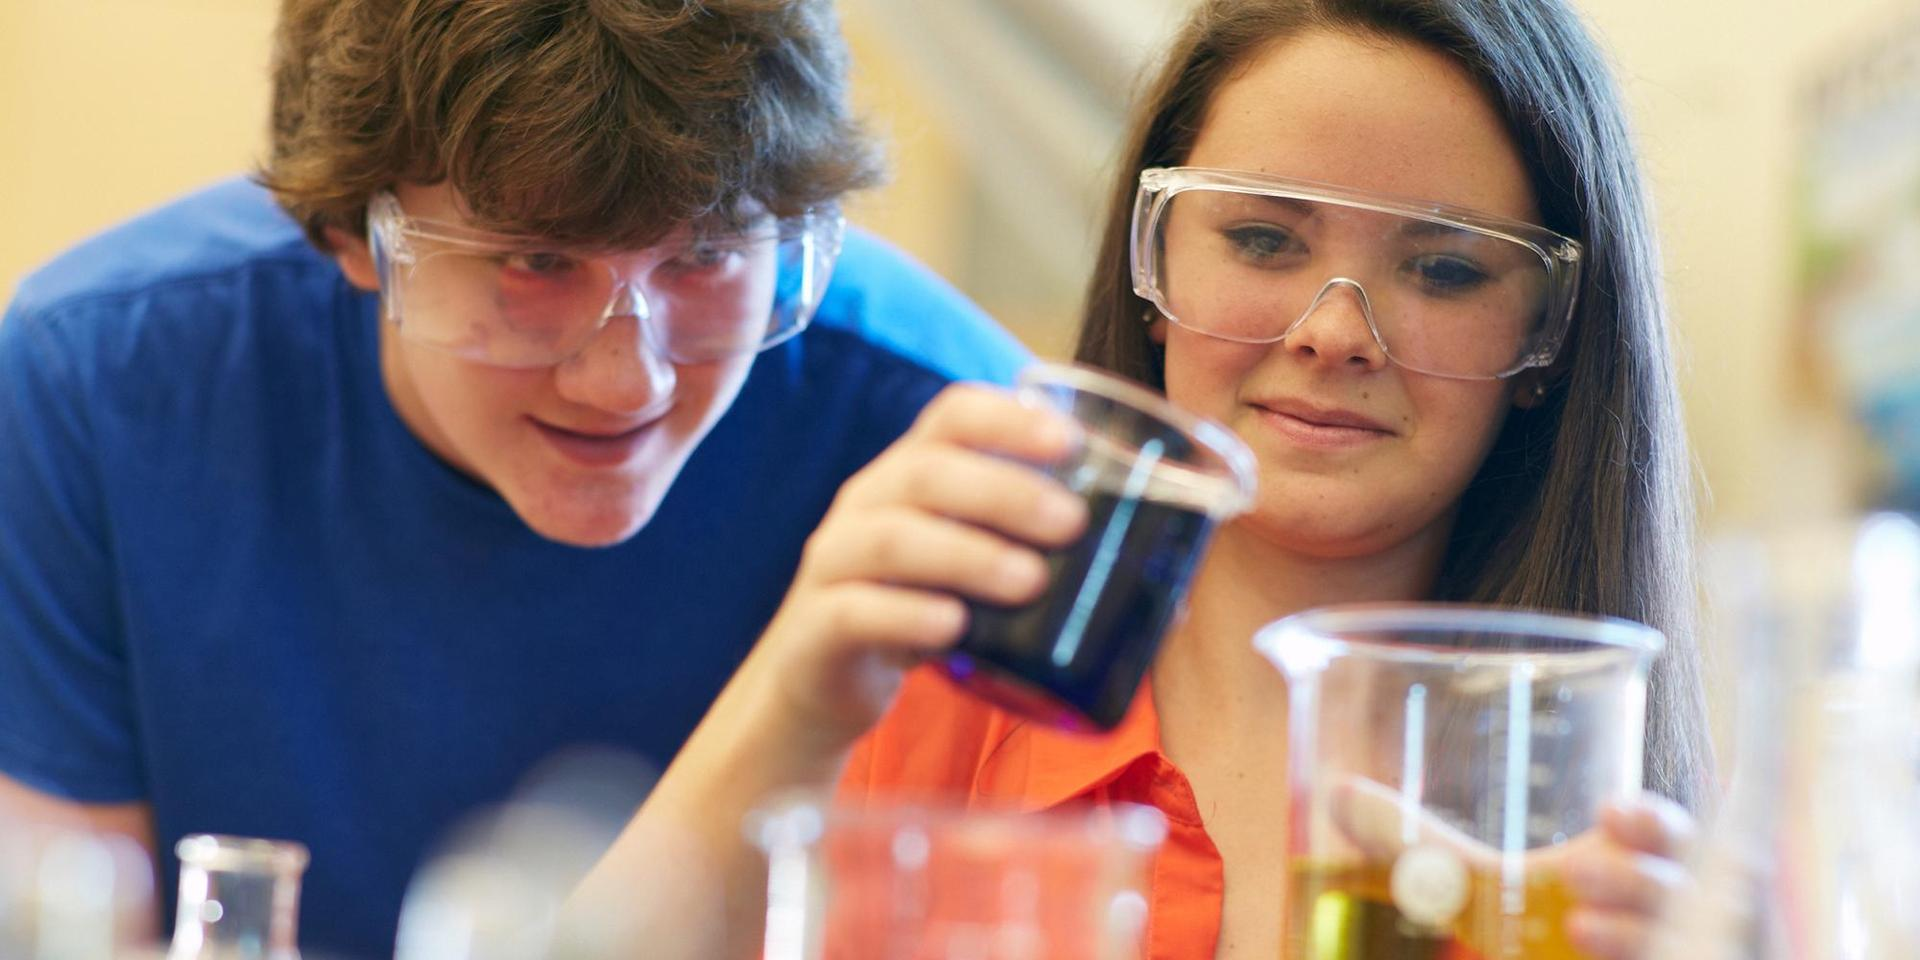 Two students conducting a chemistry experiment with fluids in beakers.